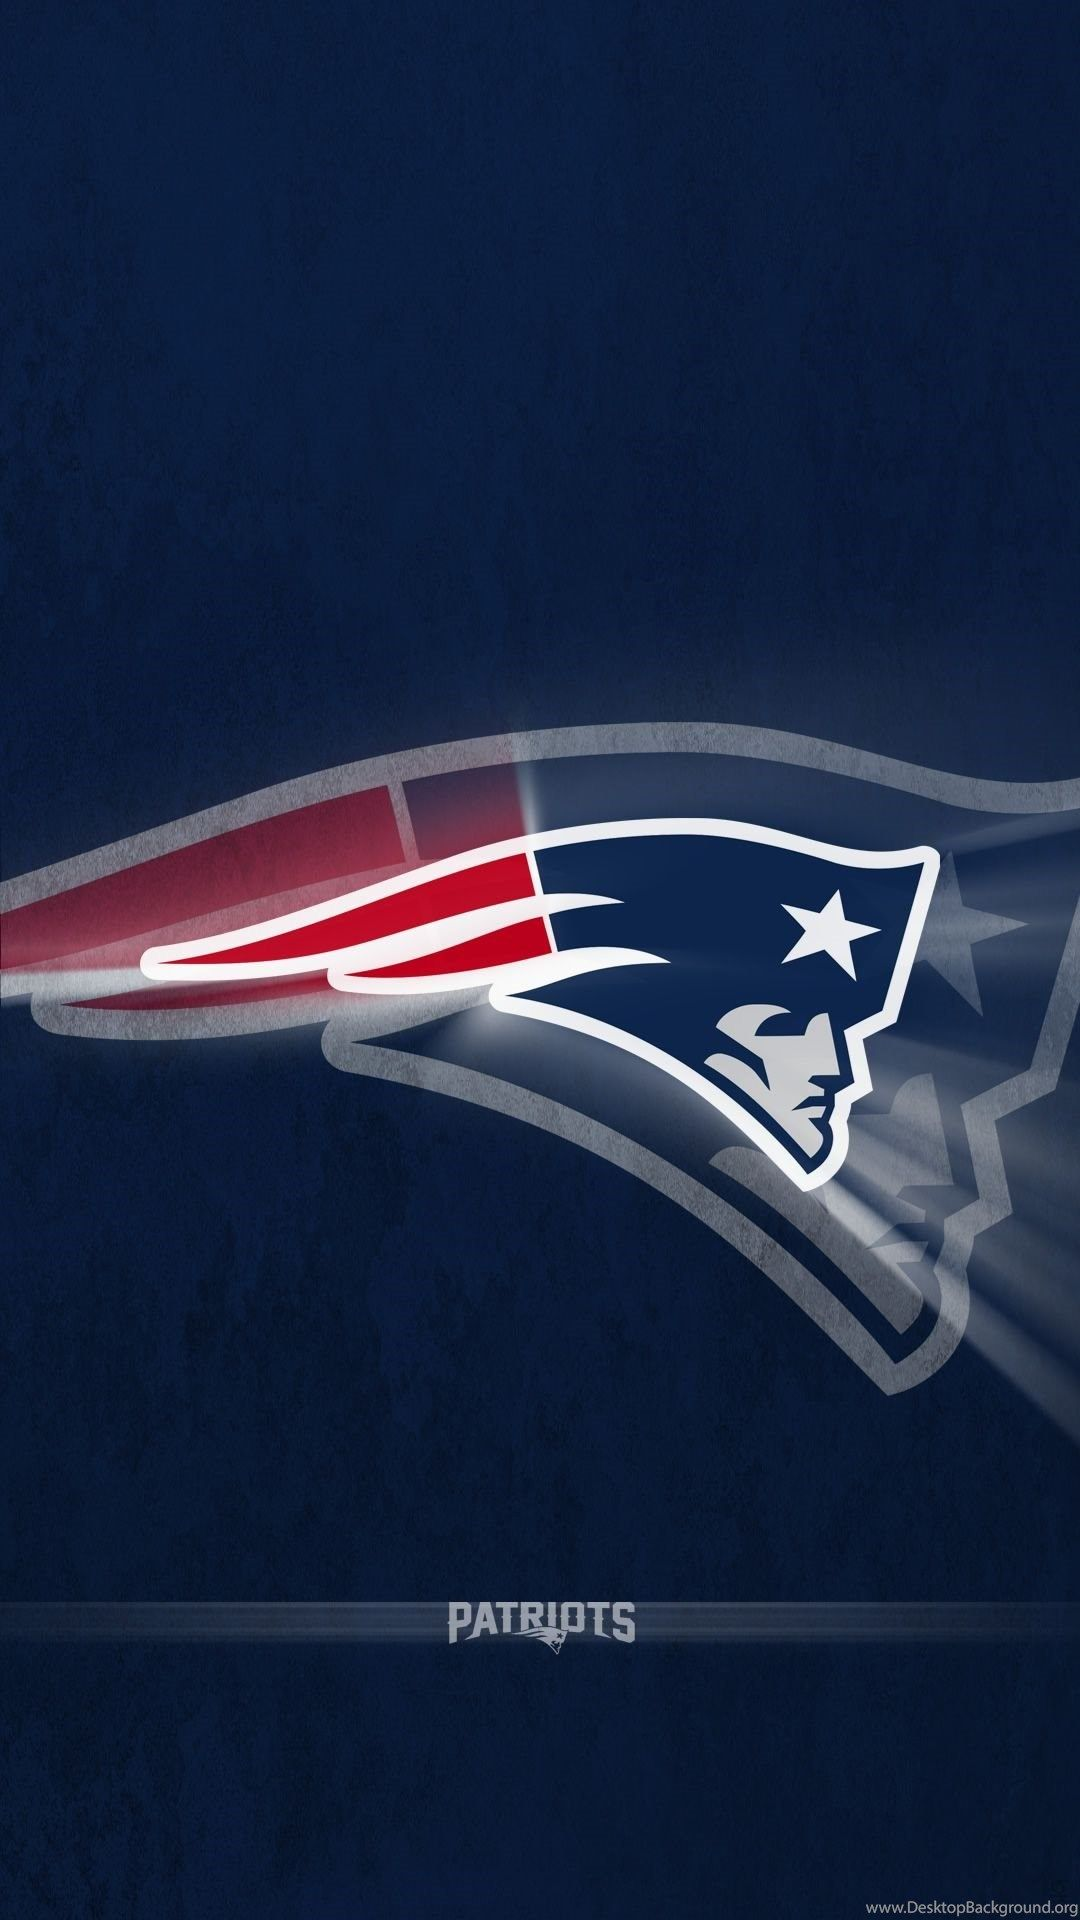 New England Patriots IPhone Wallpaper (1080x1920 px) New